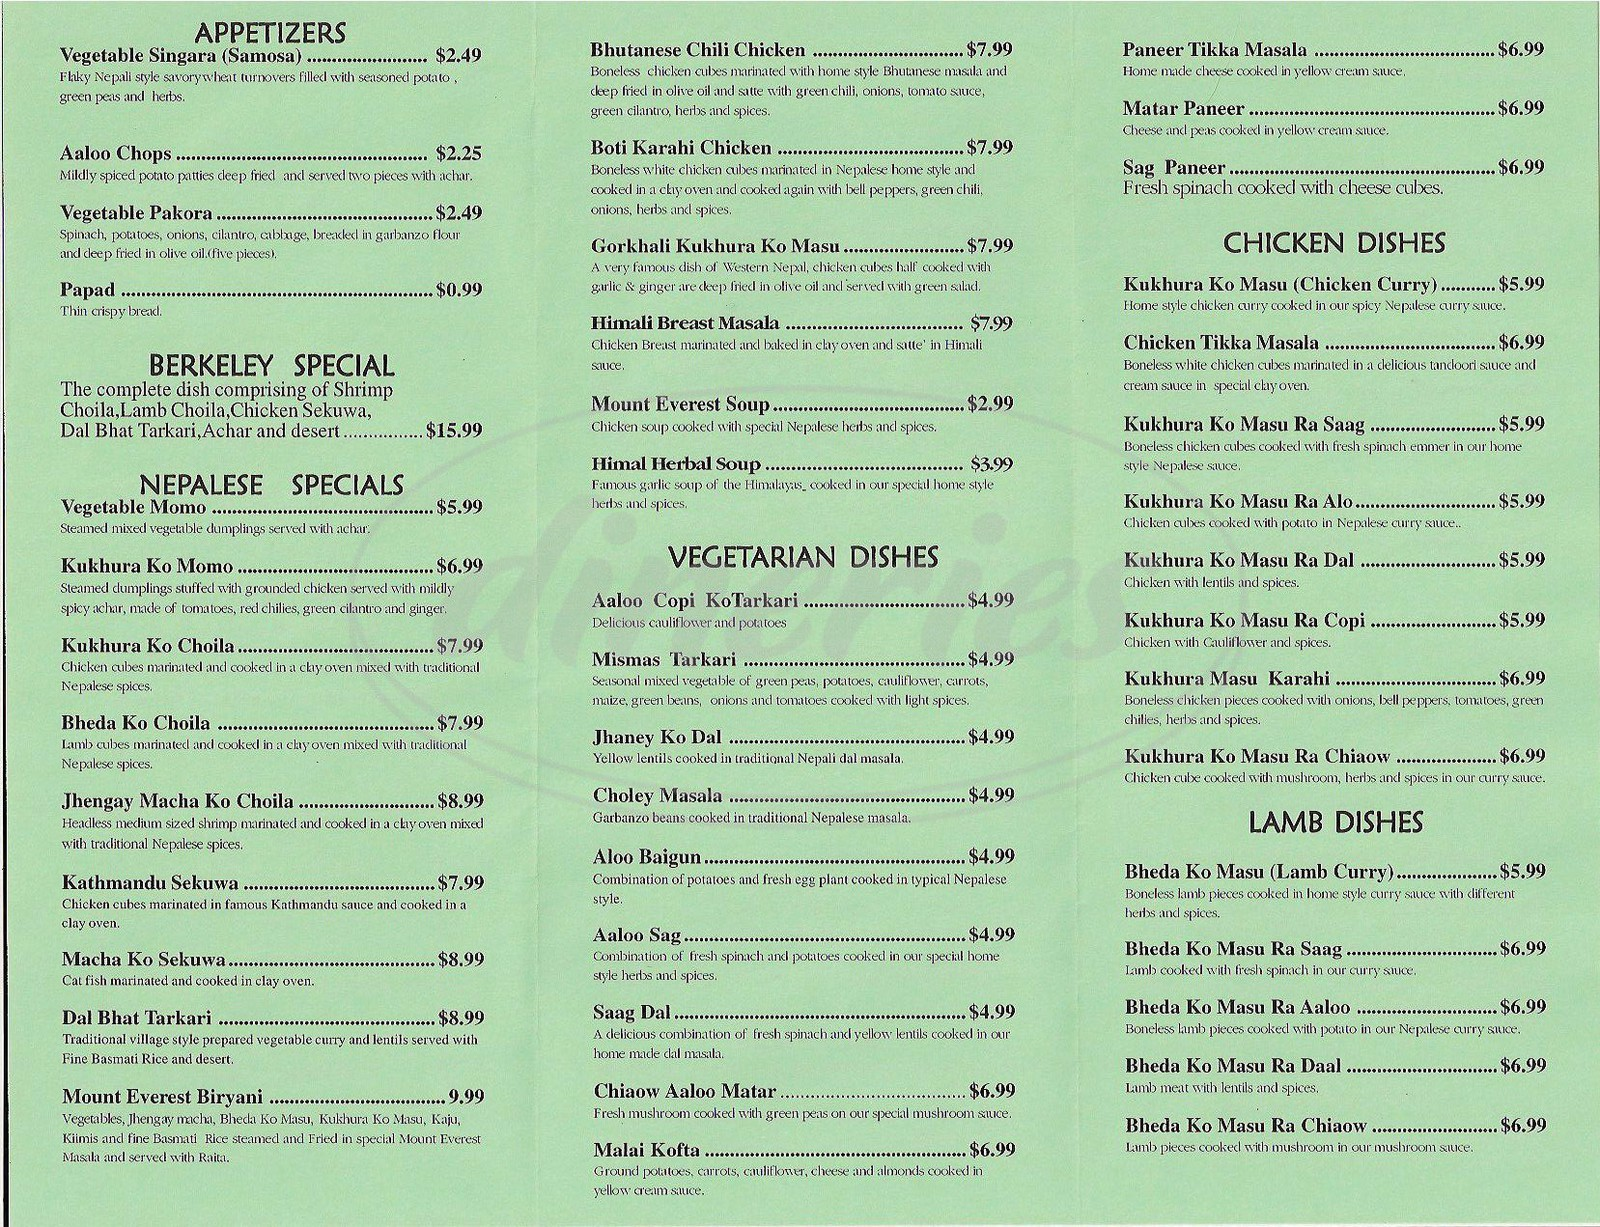 menu for Mount Everest